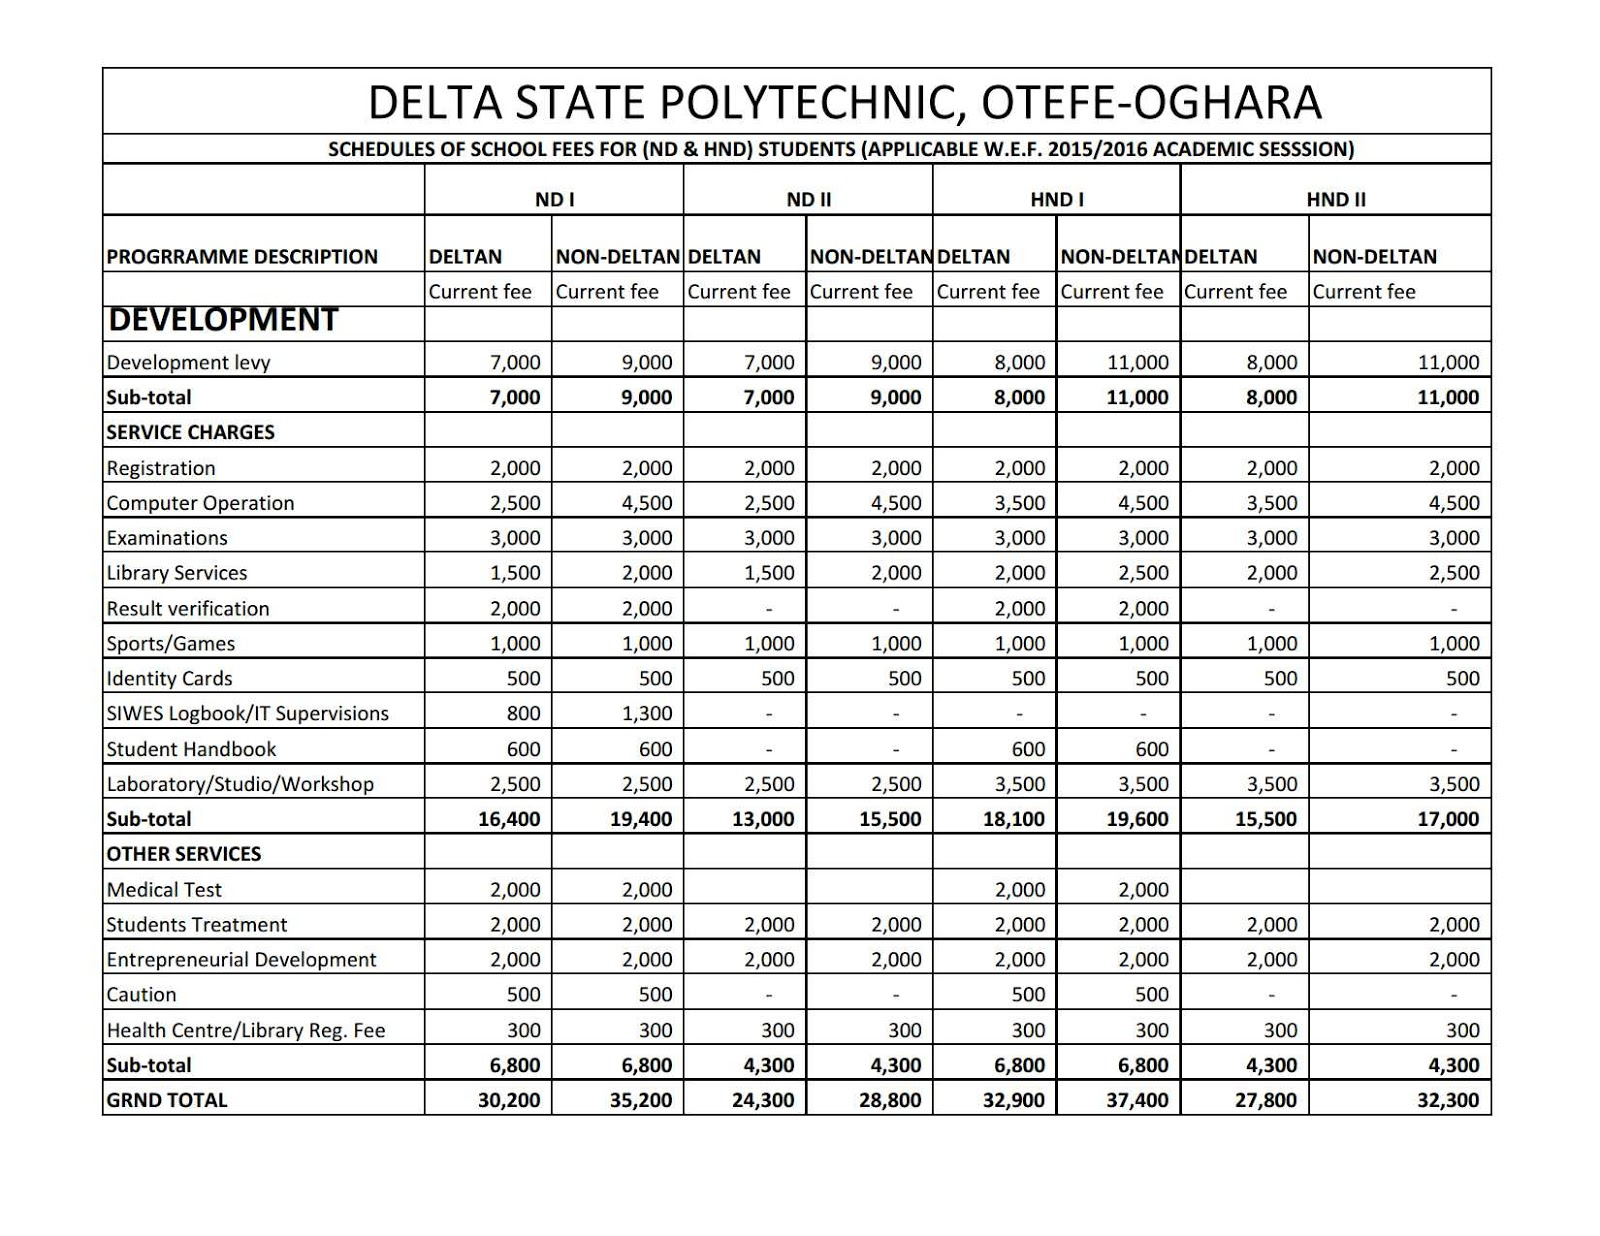 otefe oghara sch fees schedule acceptance clearance 2015